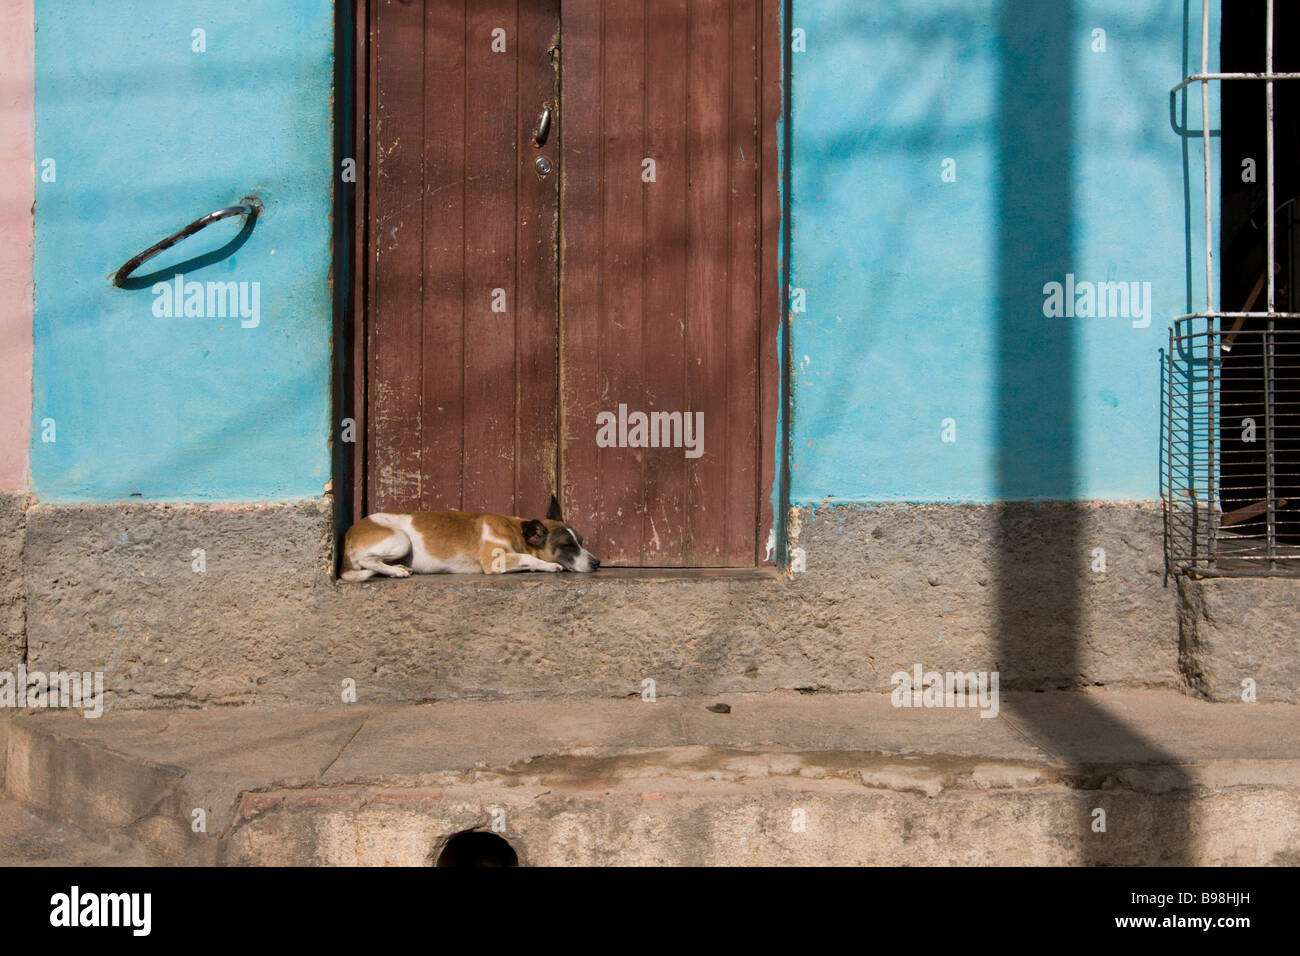 a dog sleeping in the sunshine in Trinidad, Cuba - Stock Image